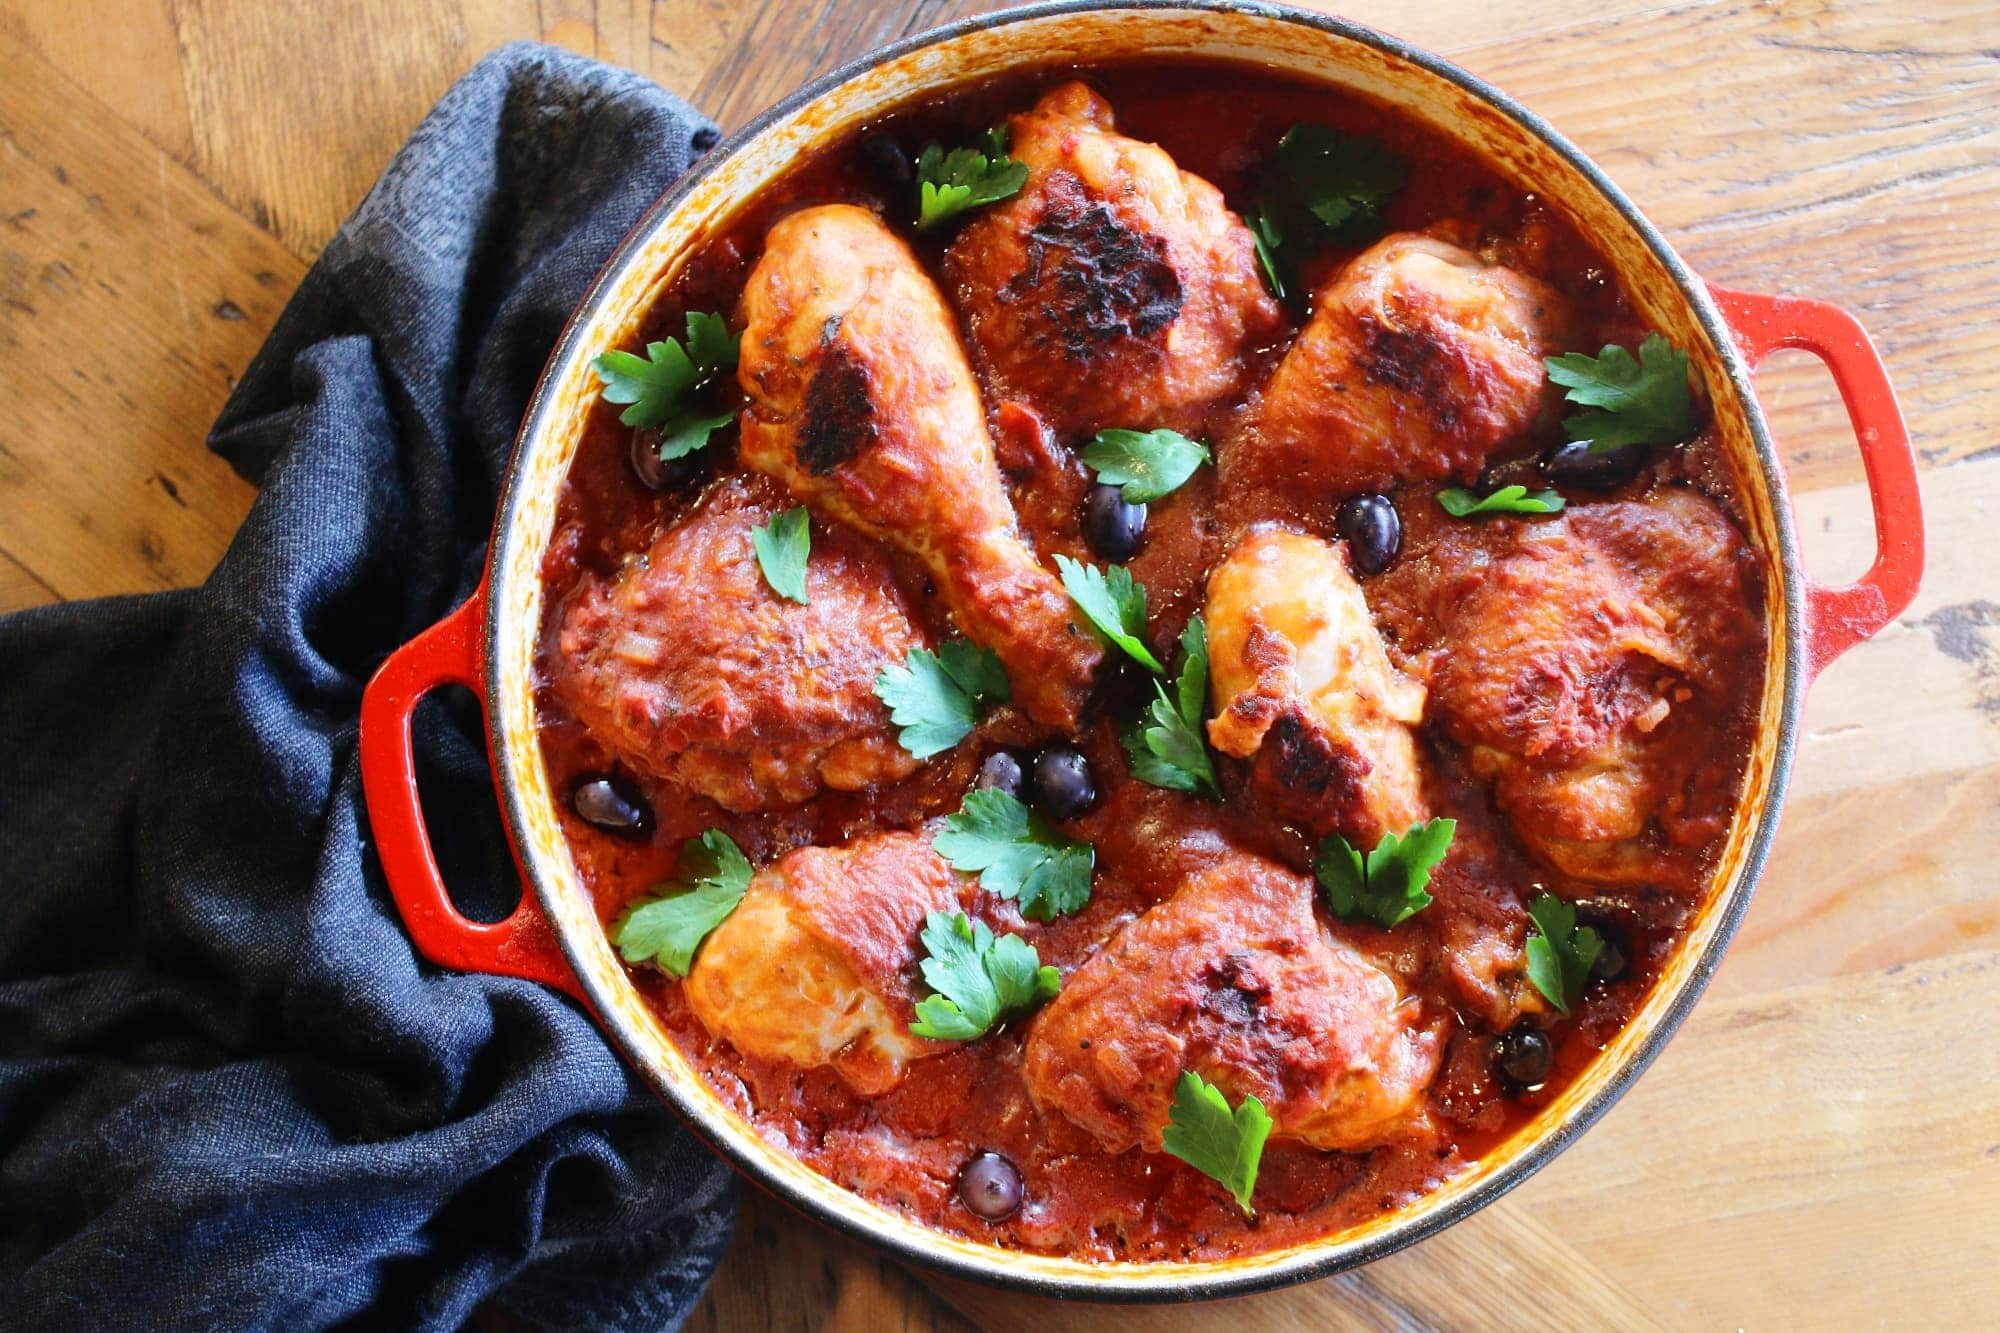 This authentic Italian chicken cacciatore recipe is absolutely delicious.